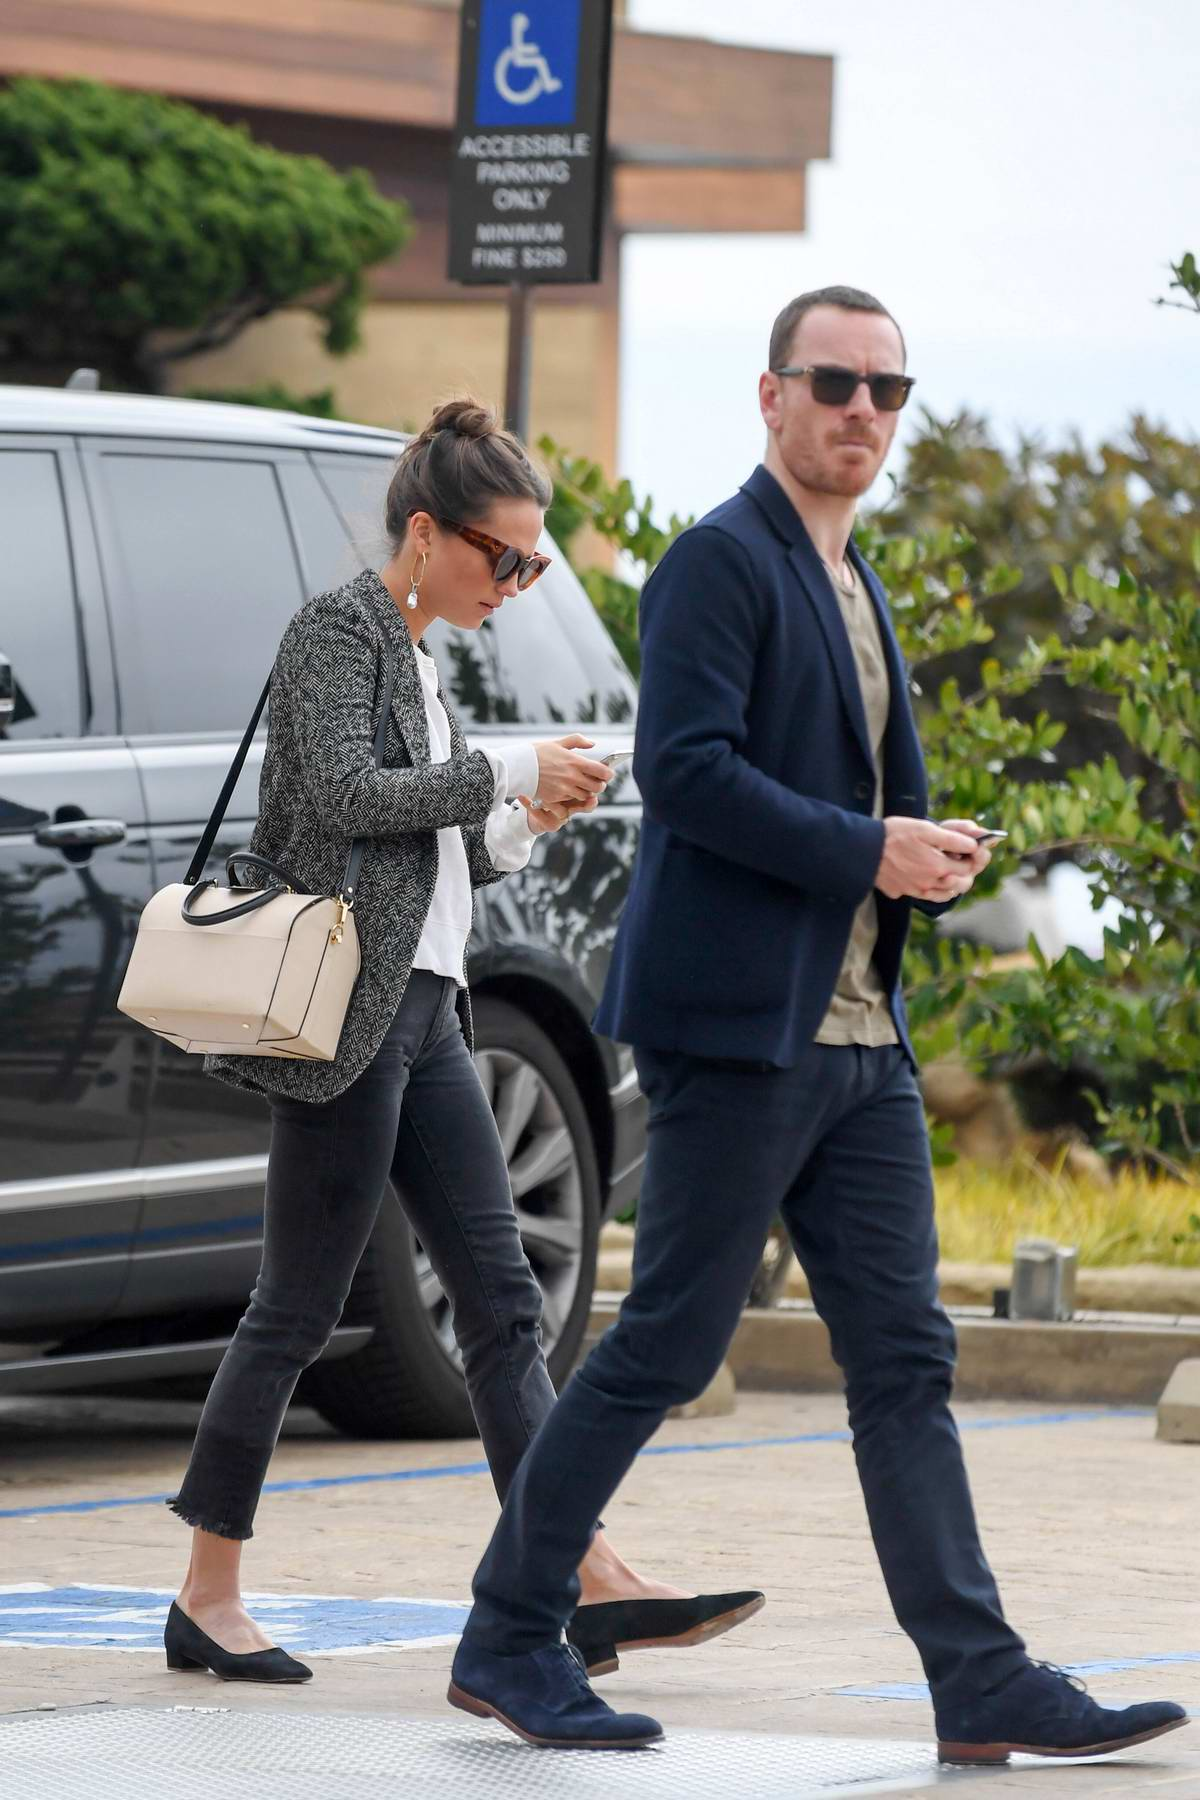 Alicia Vikander and Michael Fassbender head to lunch at the Soho House in Malibu, California